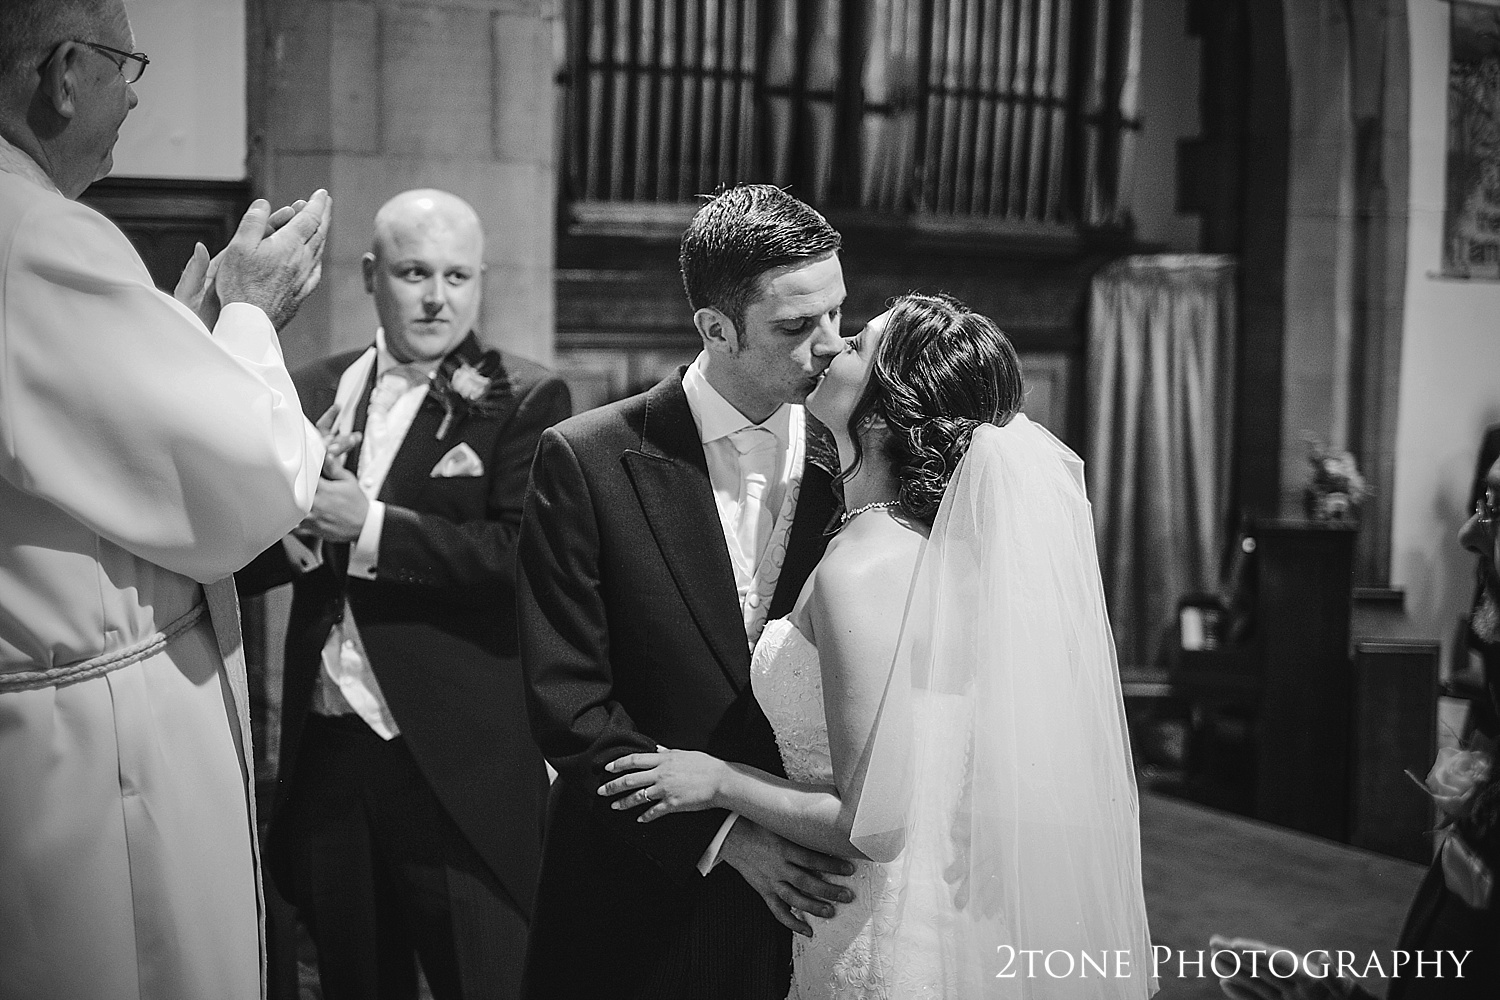 Church weddings in Seaham by Wedding Photographers based in Durham, www.2tonephotography.co.uk